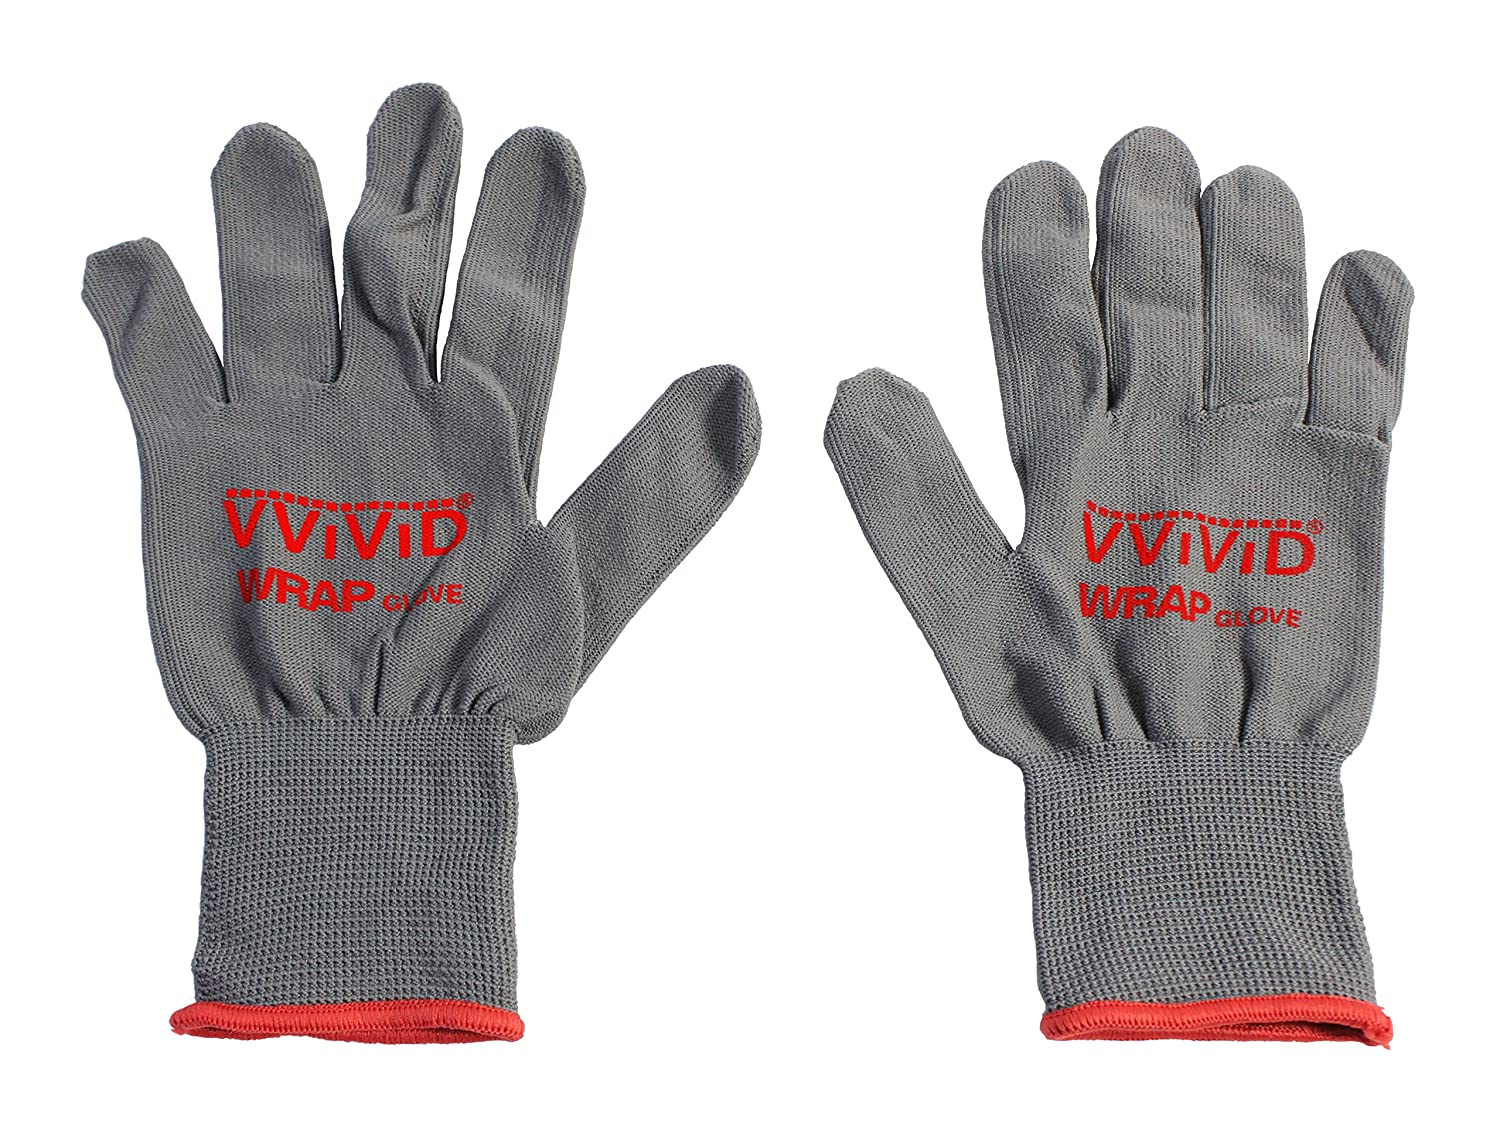 Image of VViViD Grey Professional Vinyl Wrap Anti-Static Applicator Glove Pair (2 Glove Pack)